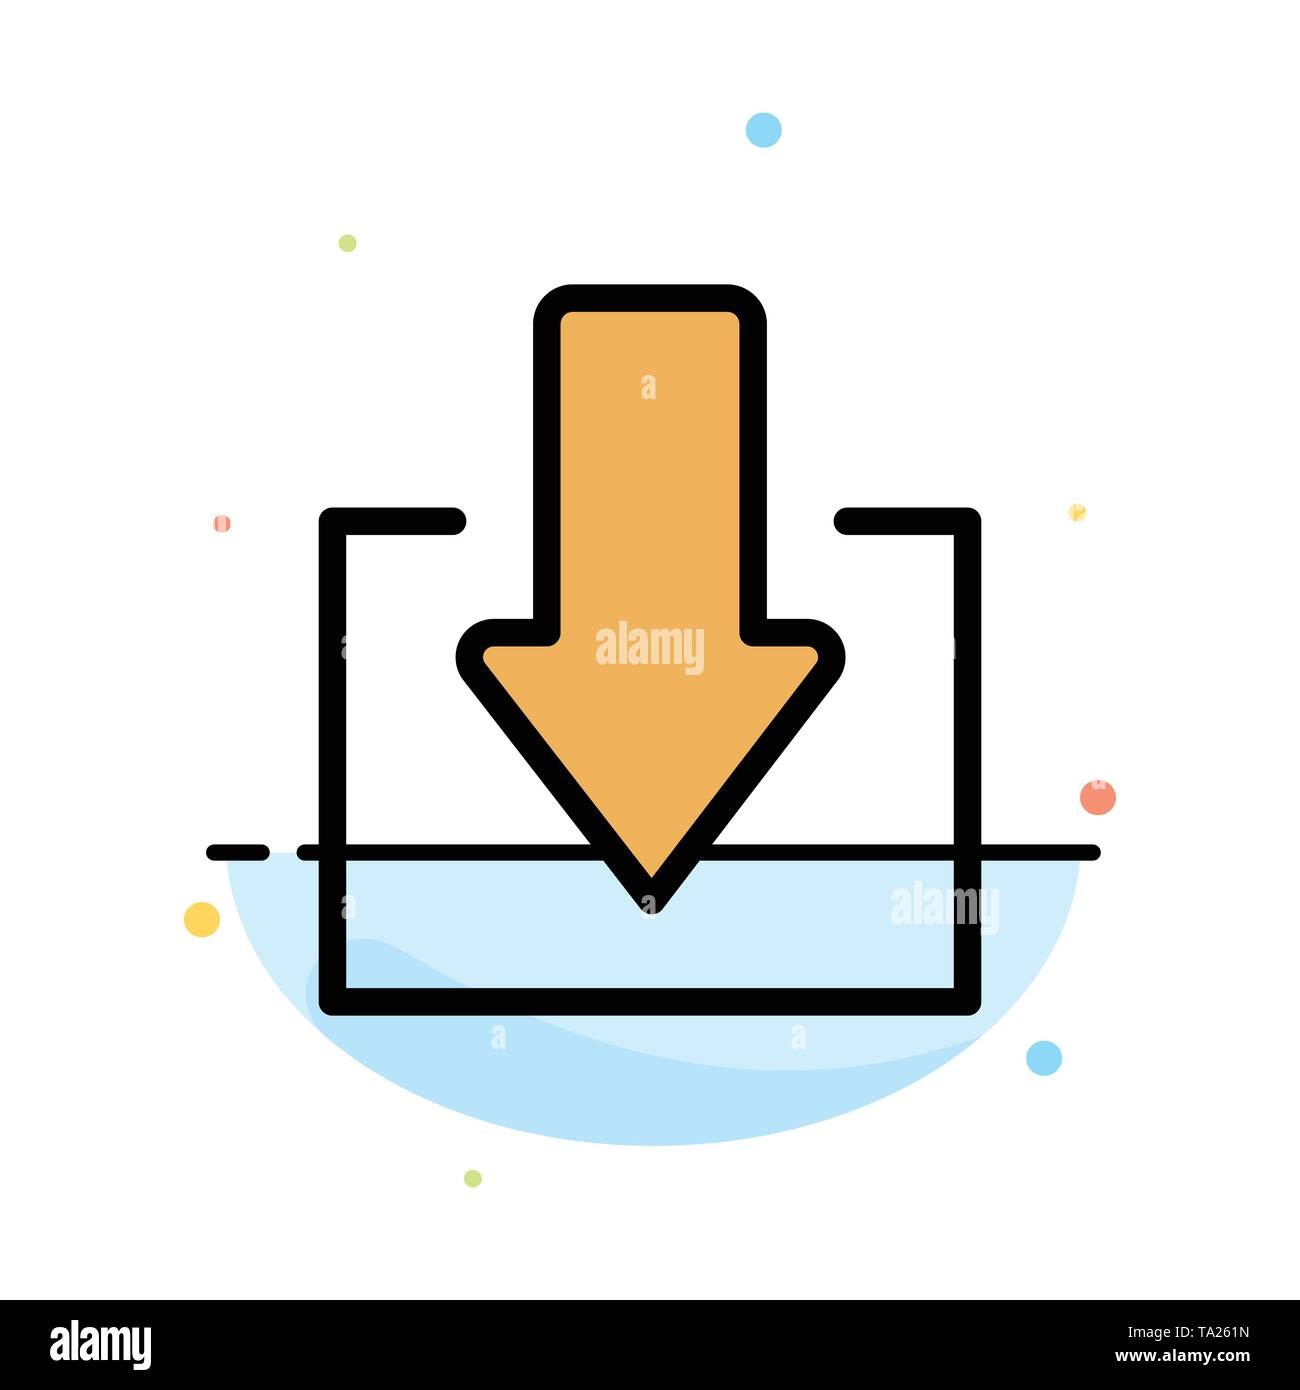 Arrow, Down, Download Abstract Flat Color Icon Template - Stock Image